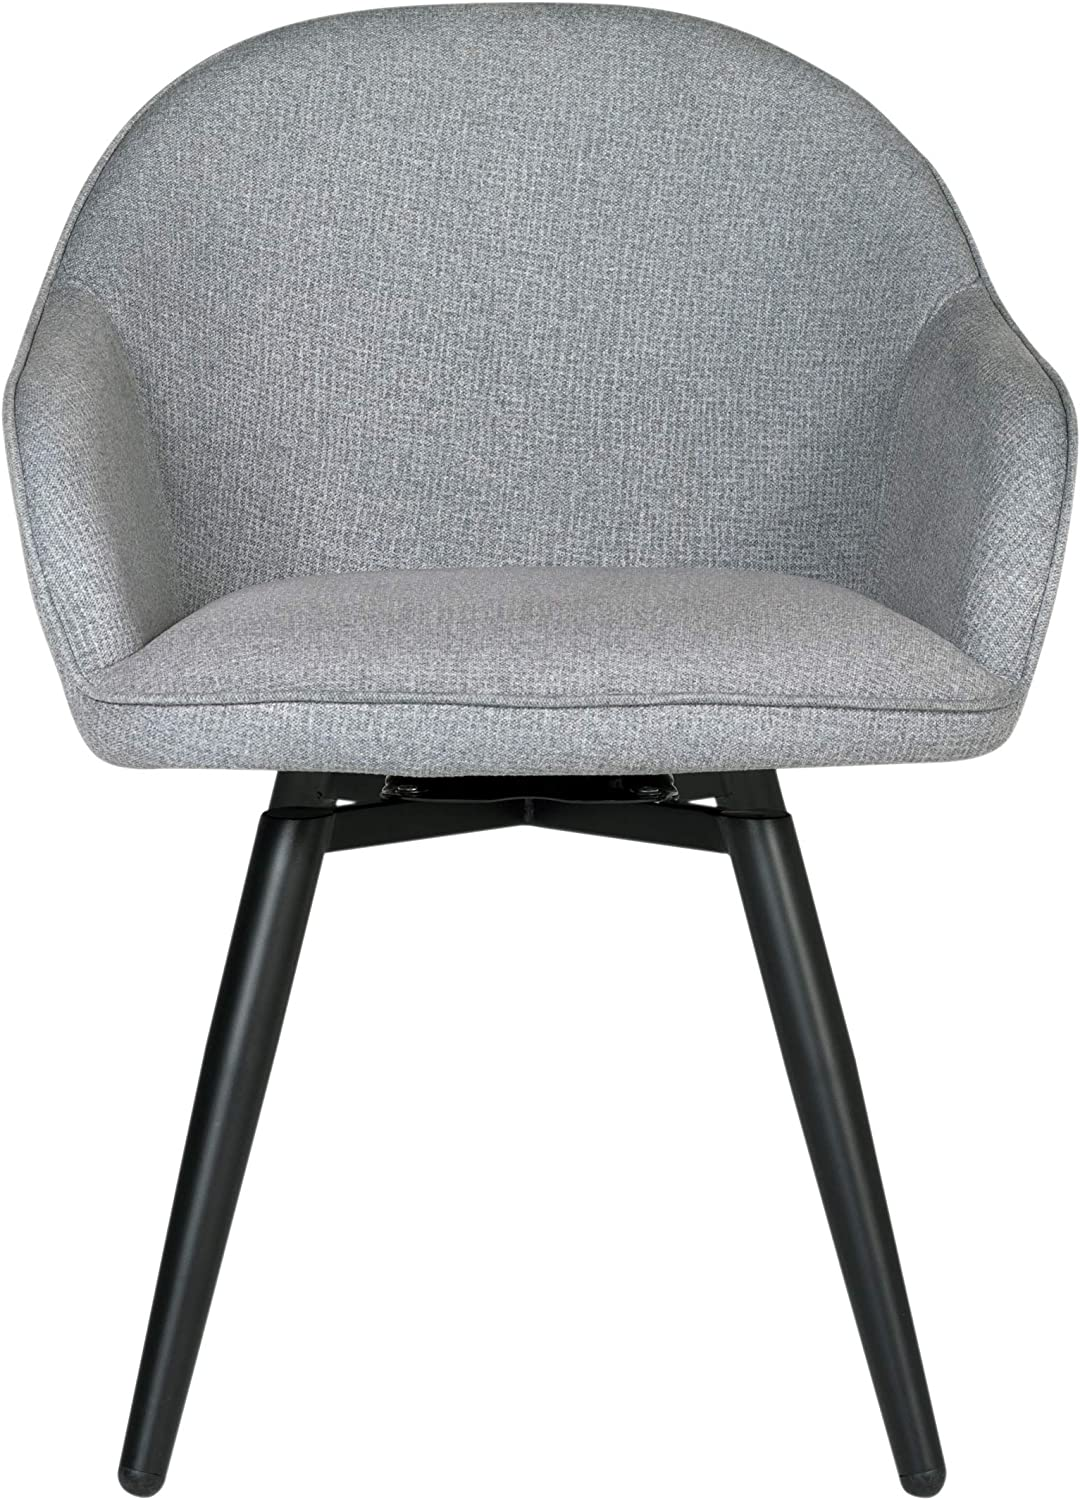 Studio Designs Home Dome Upholstered Swivel Dining